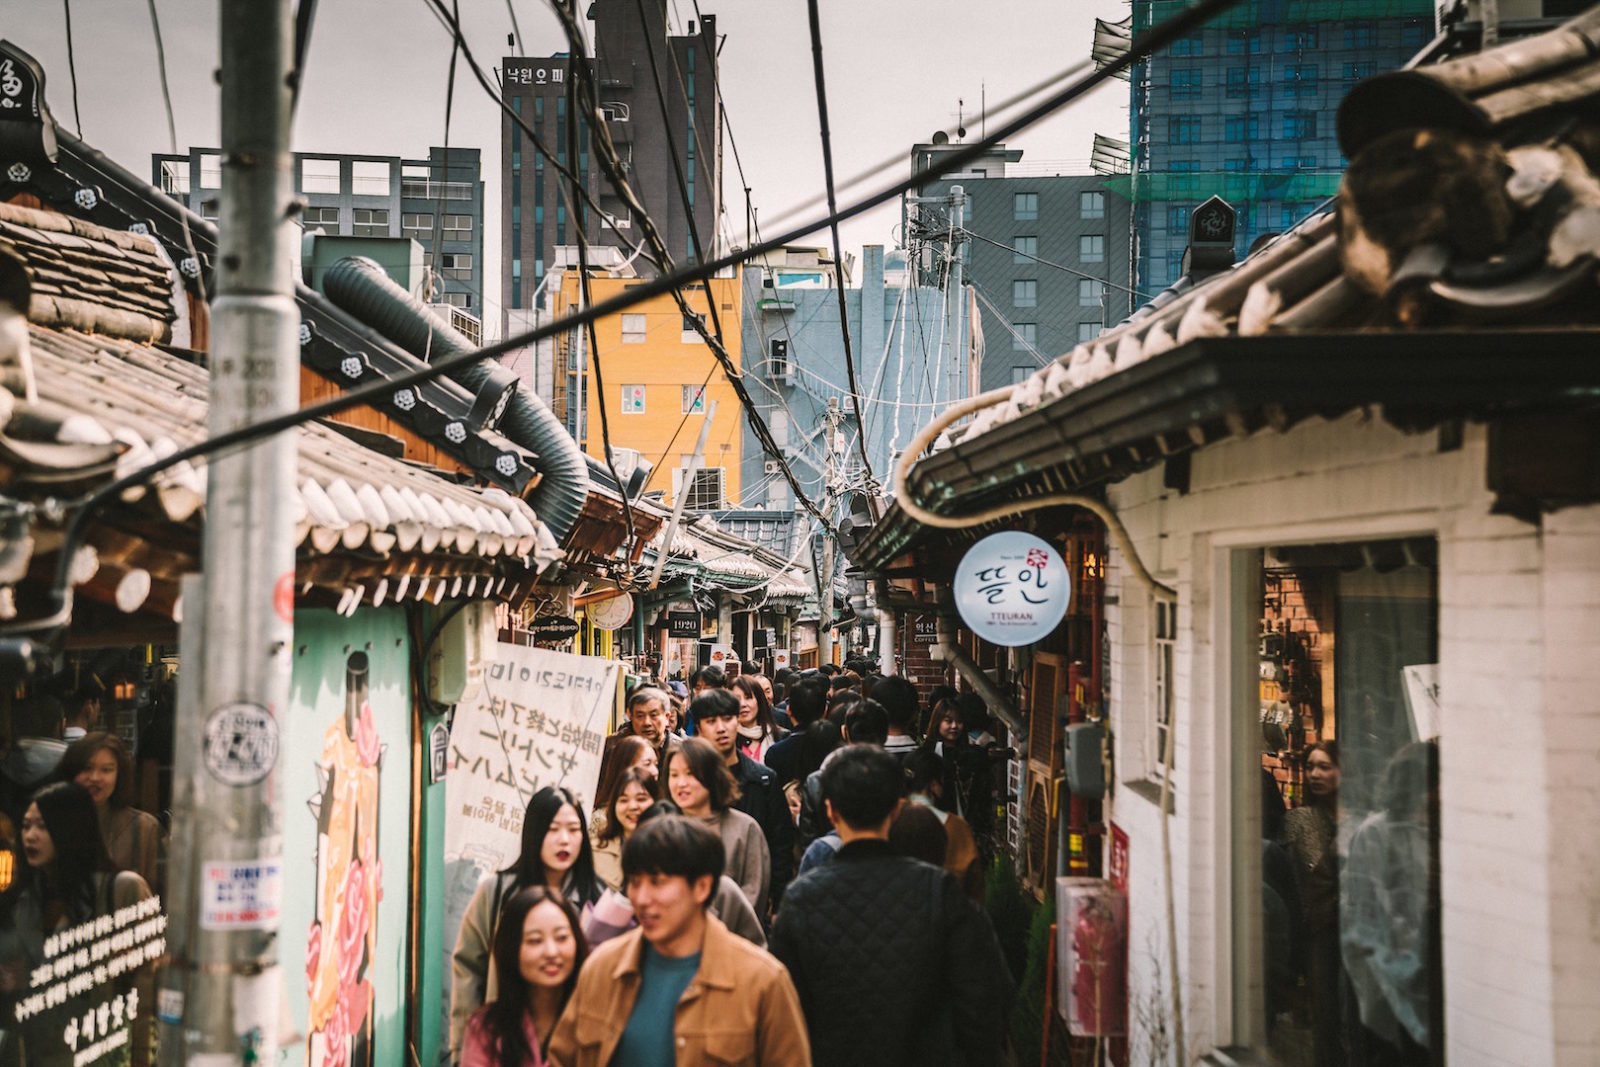 TRAVEL TIPS FOR SEOUL, SOUTH KOREA